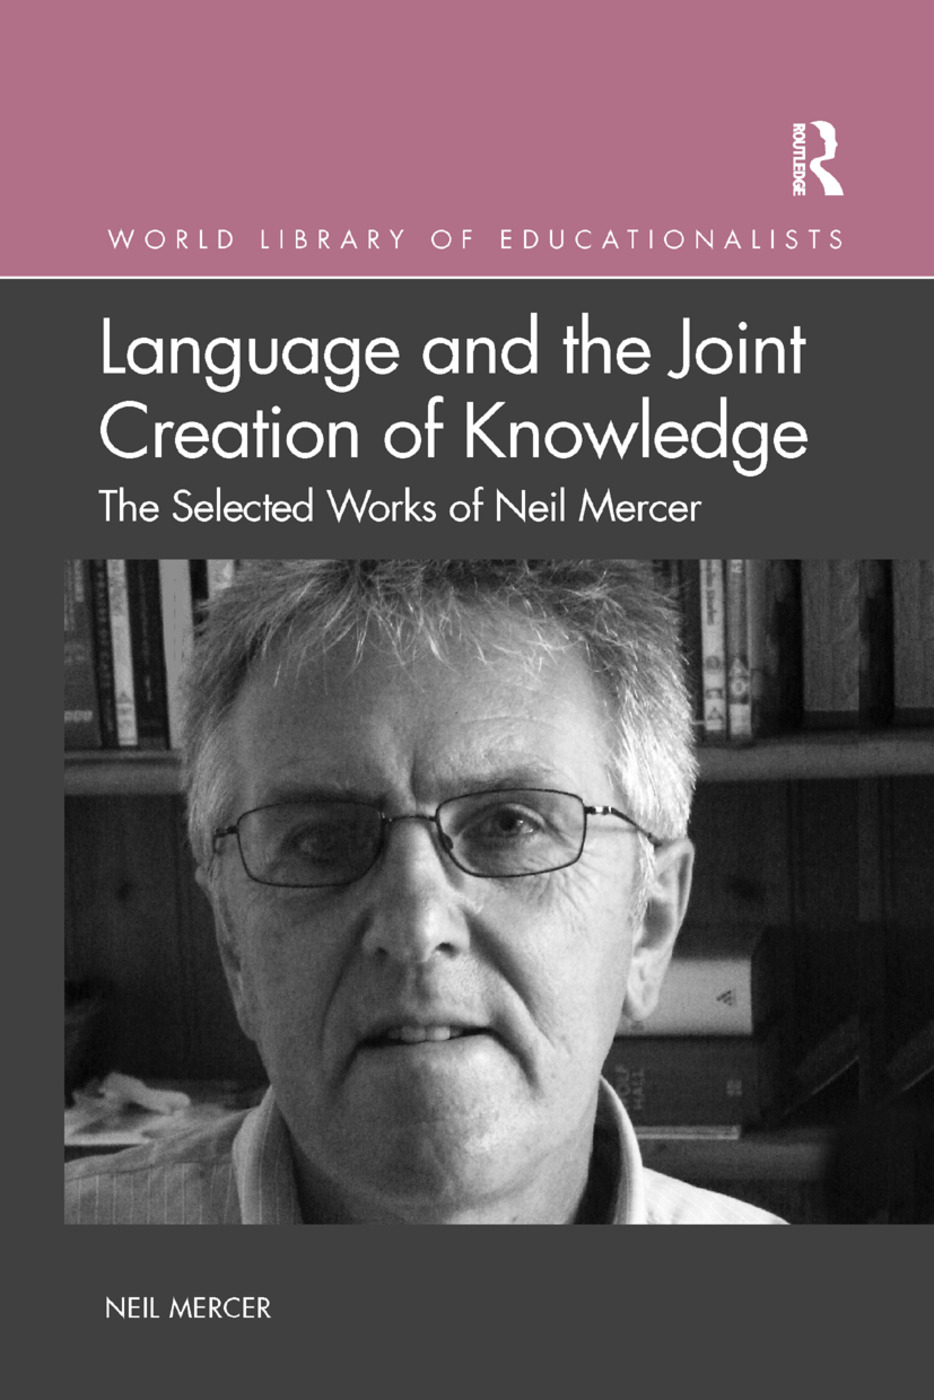 Language and the Joint Creation of Knowledge